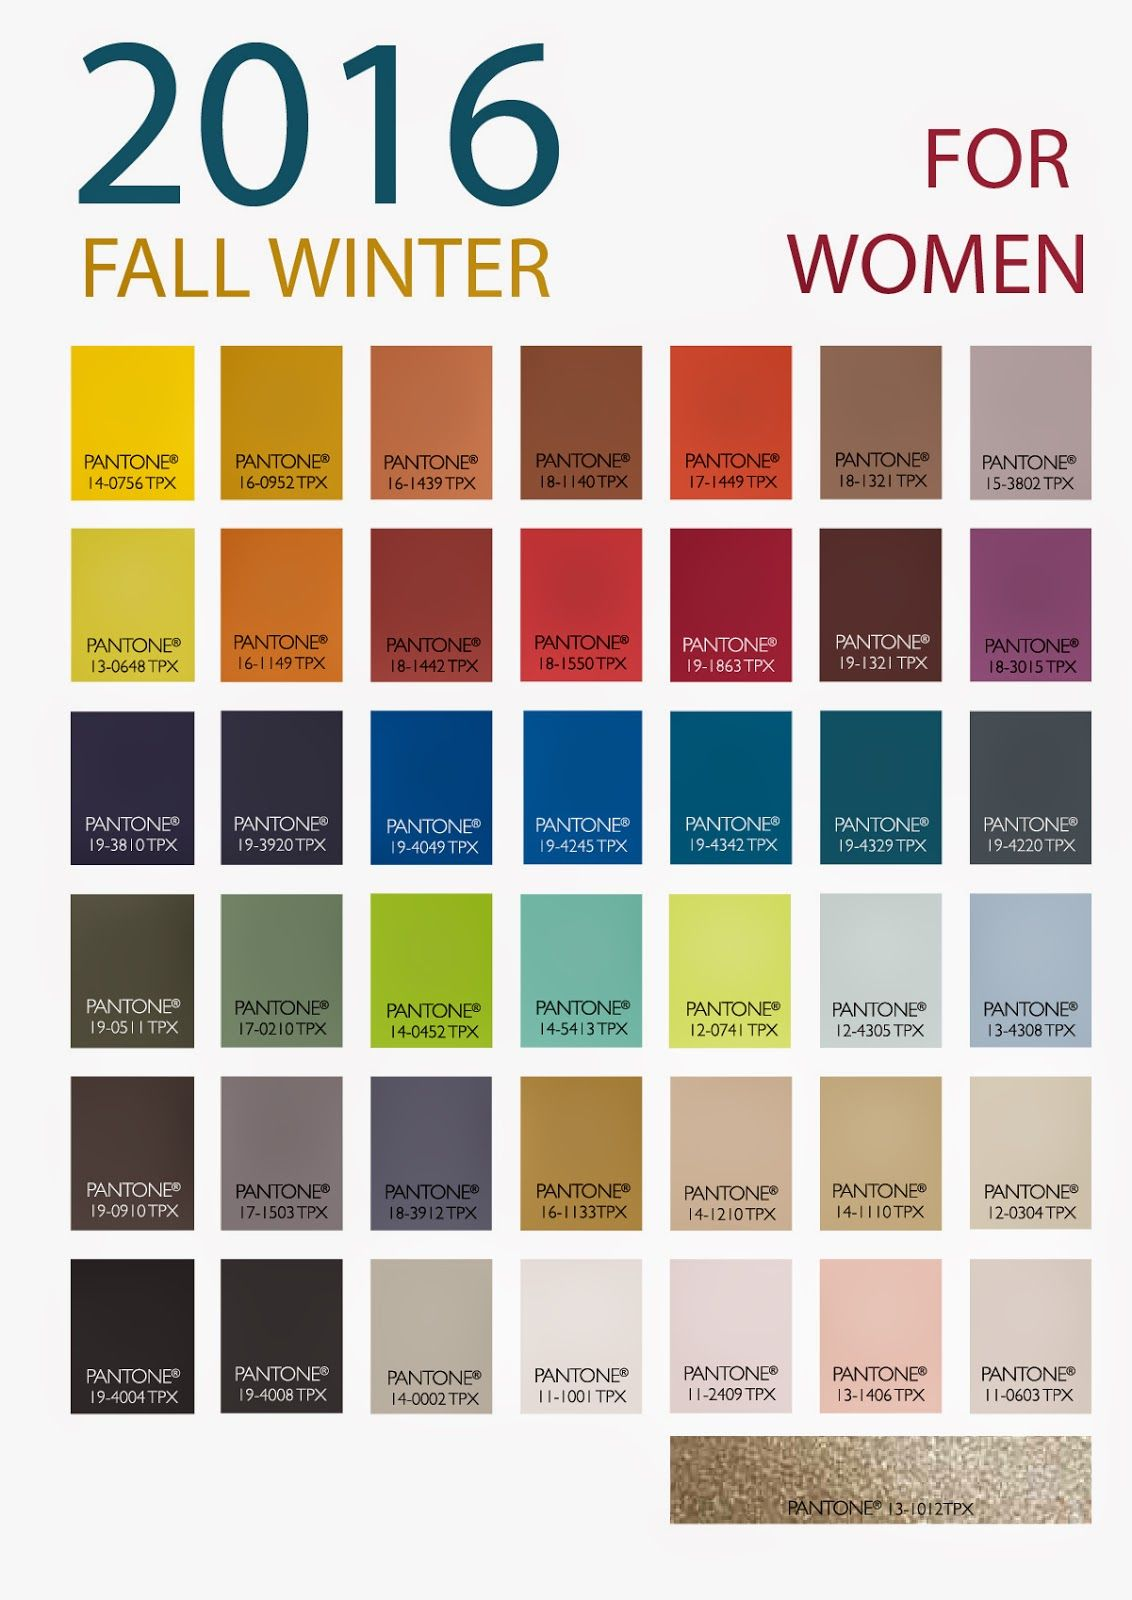 Patone 39 s winter 2016 women 39 s color forecast from store for Fall clothing colors 2016